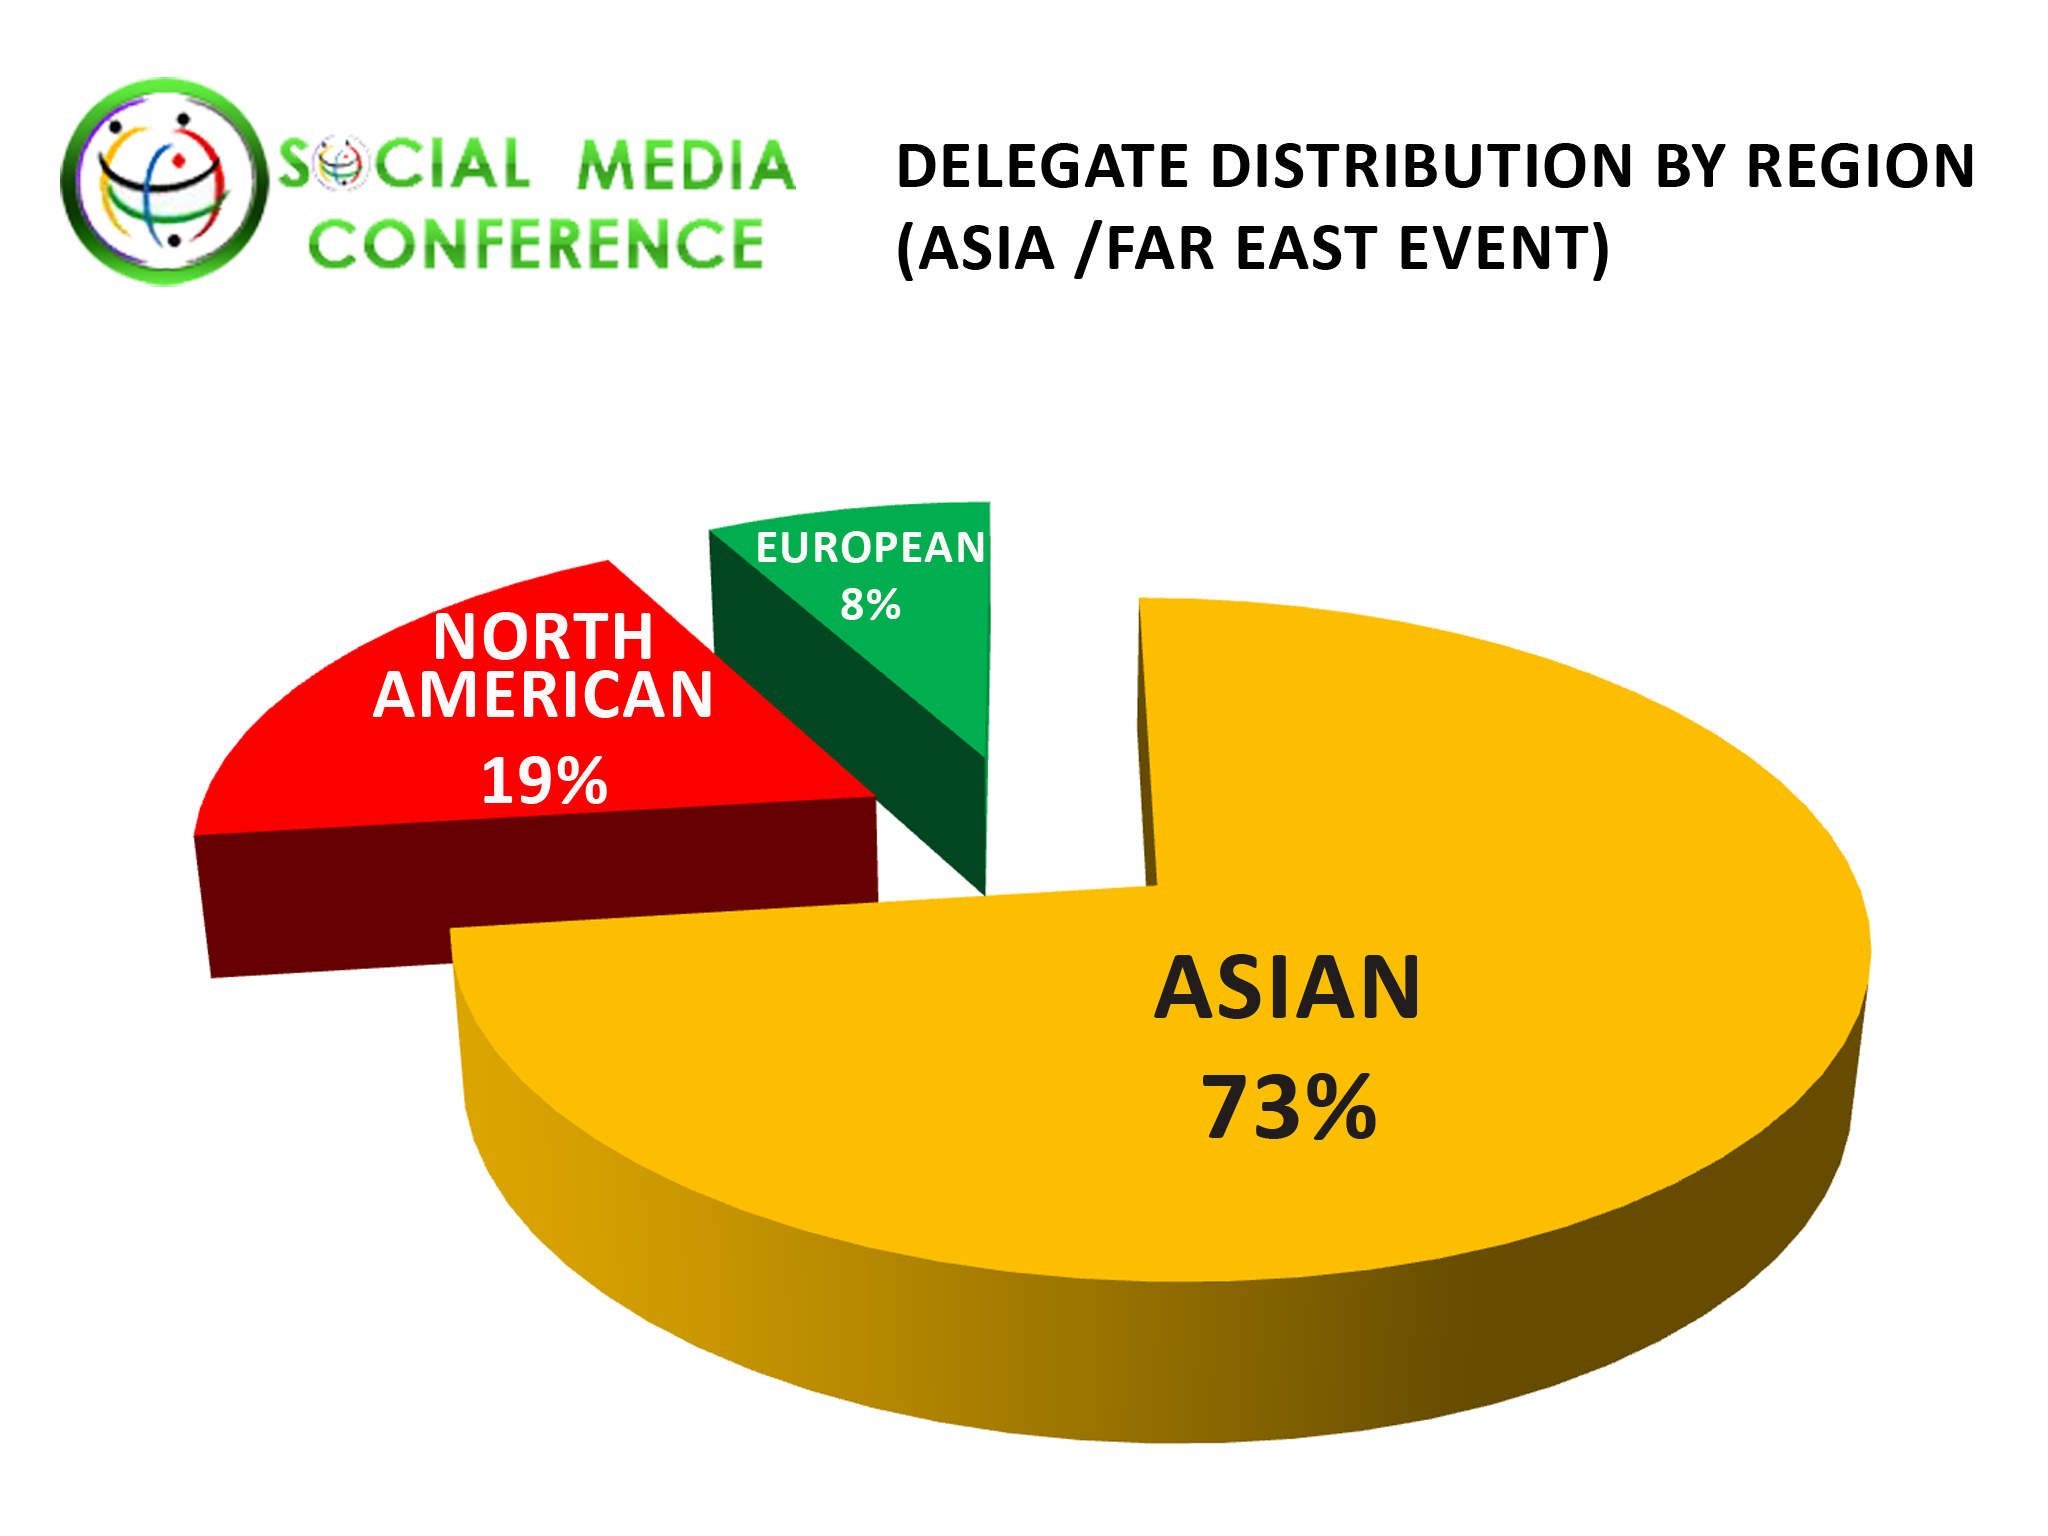 Social Networking Conference Regional Delegate Distribution: Asia